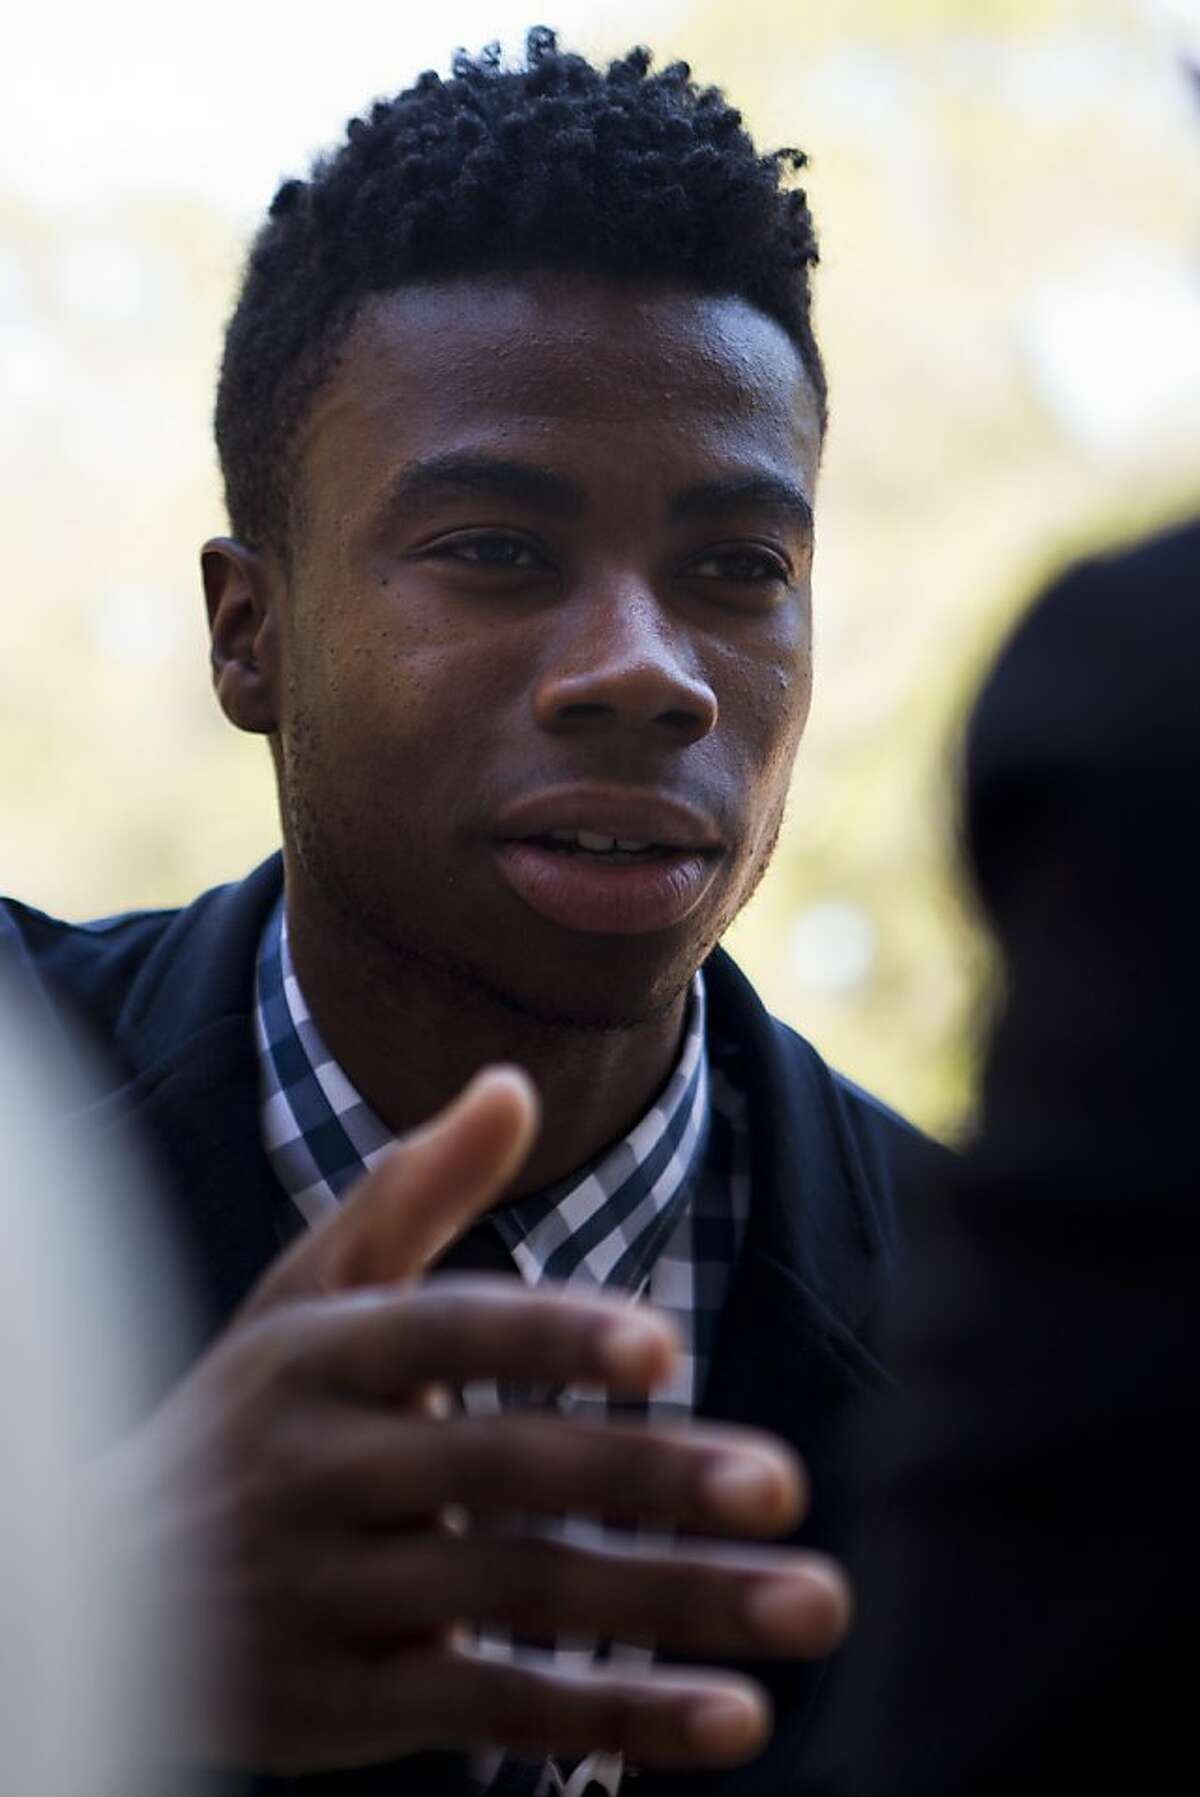 Josh Hamilton, of Oakland, who spent his time in Senegal when he was a fellow of the Global Citizen Year in 2010-2011, returns to the first week of sessions at Stanford University to offer insight and encouragement to this years fellows on Thursday, August 23, 2012 in Palo Alto, Calif.